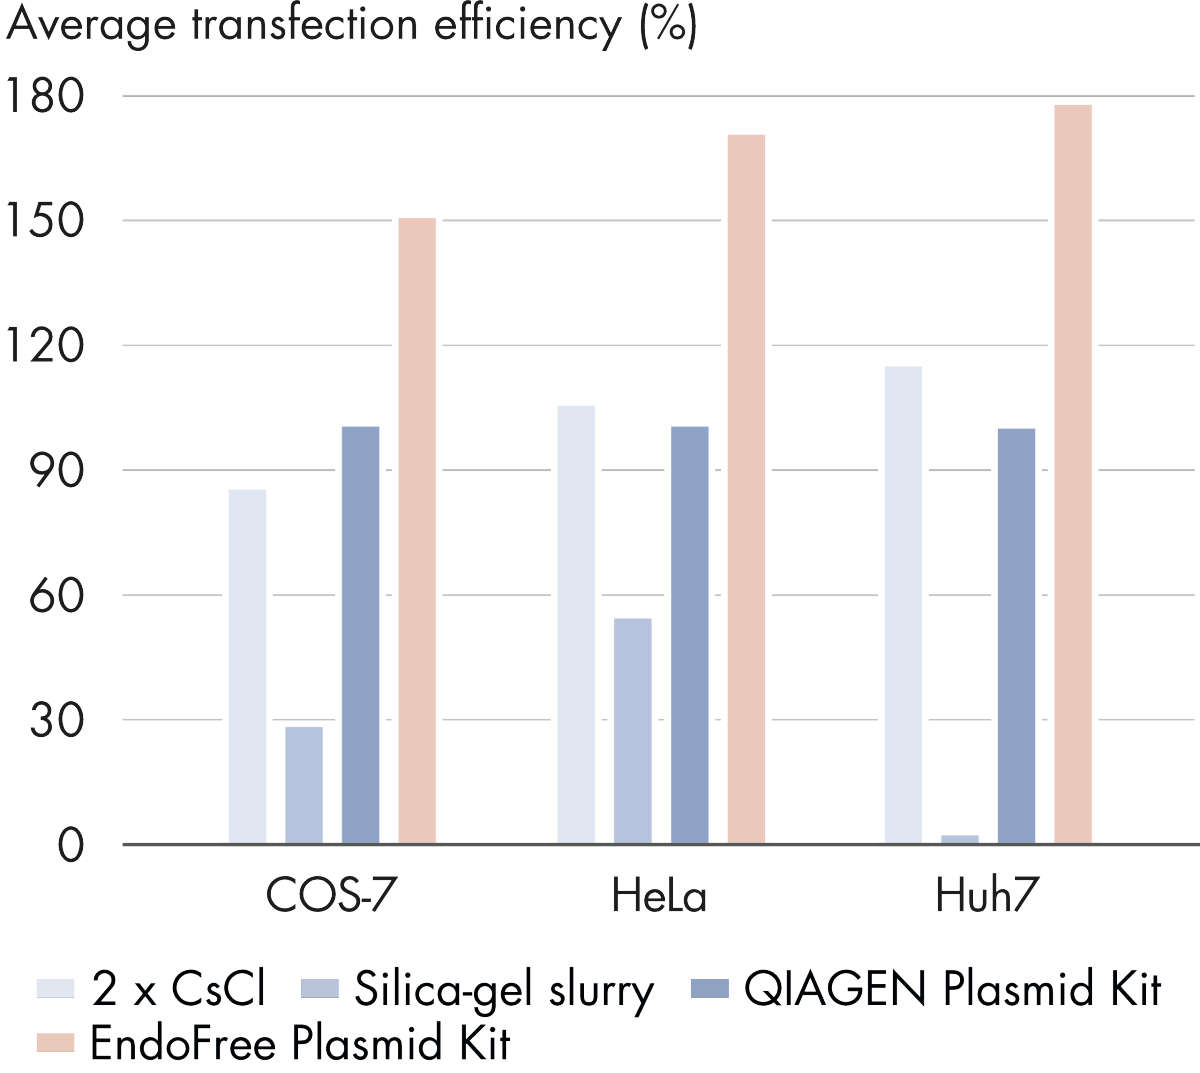 Plasmid purification method versus transfection efficiency.